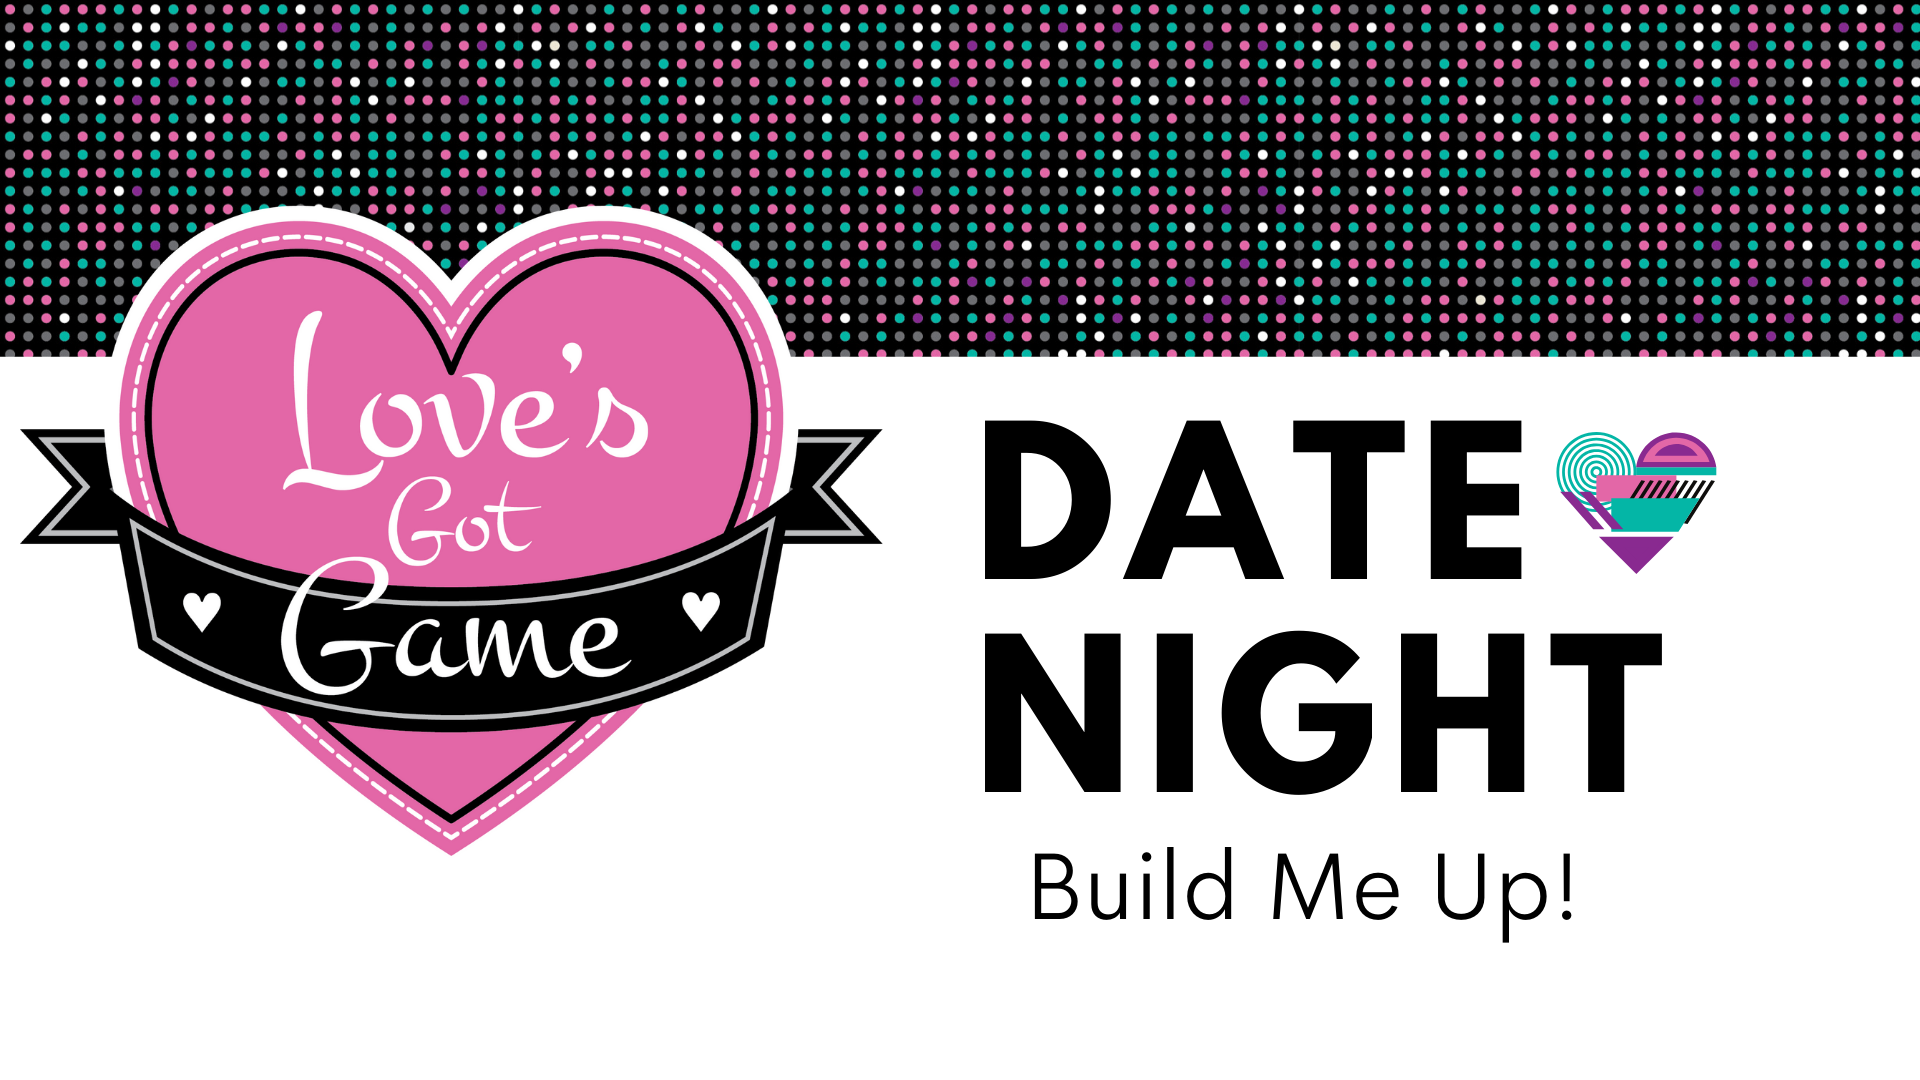 Love's Got Game Date Night: Build Me Up!